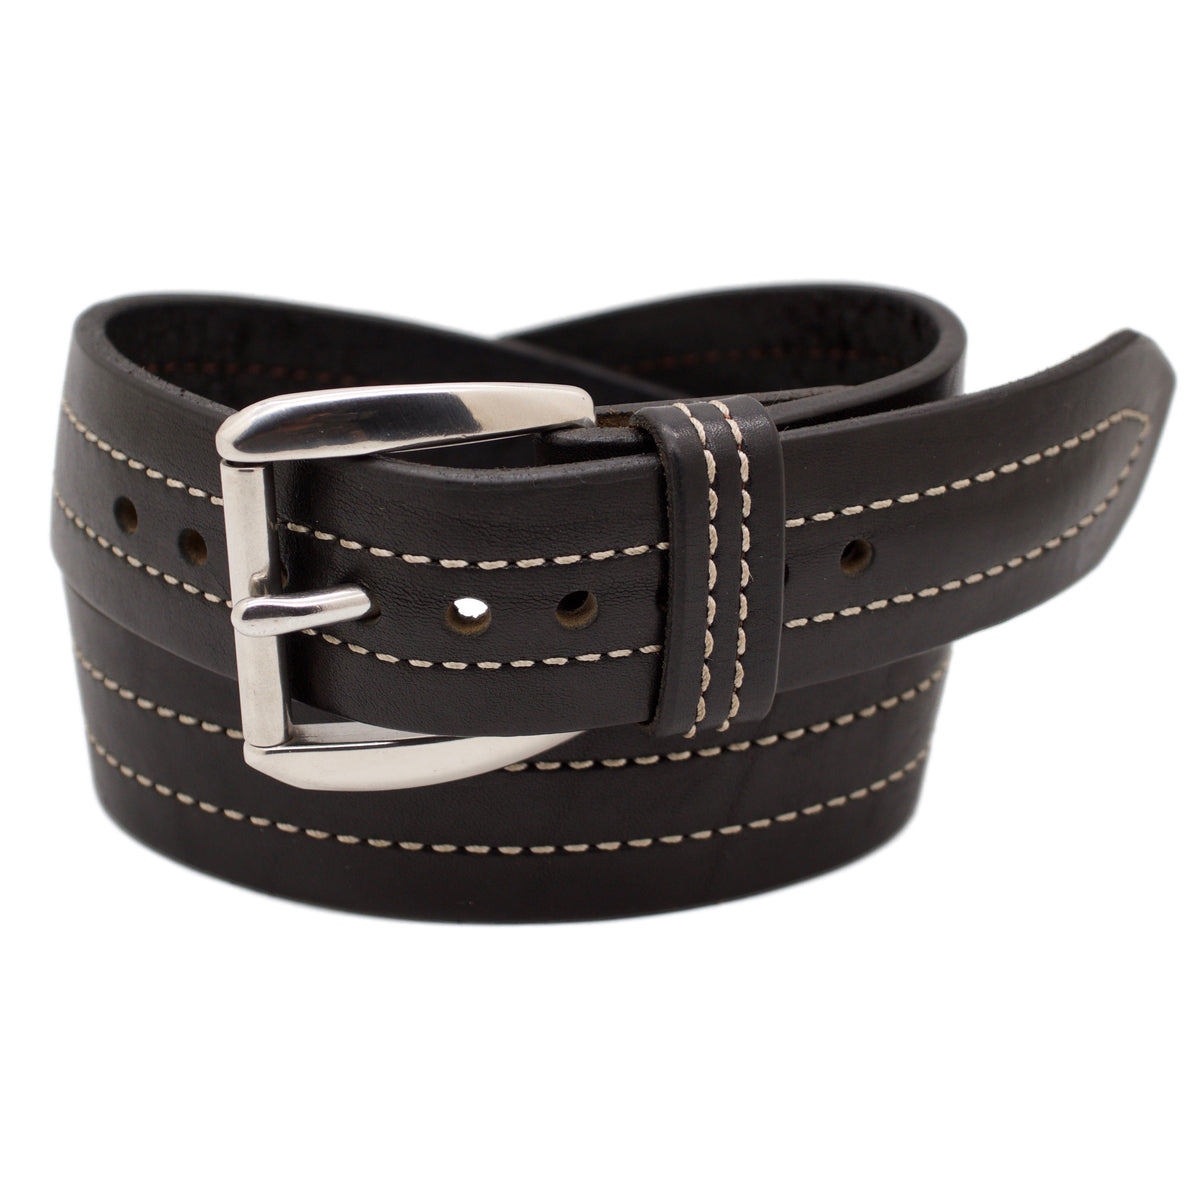 The TROUBADOUR Wide 1.75 Leather Belt